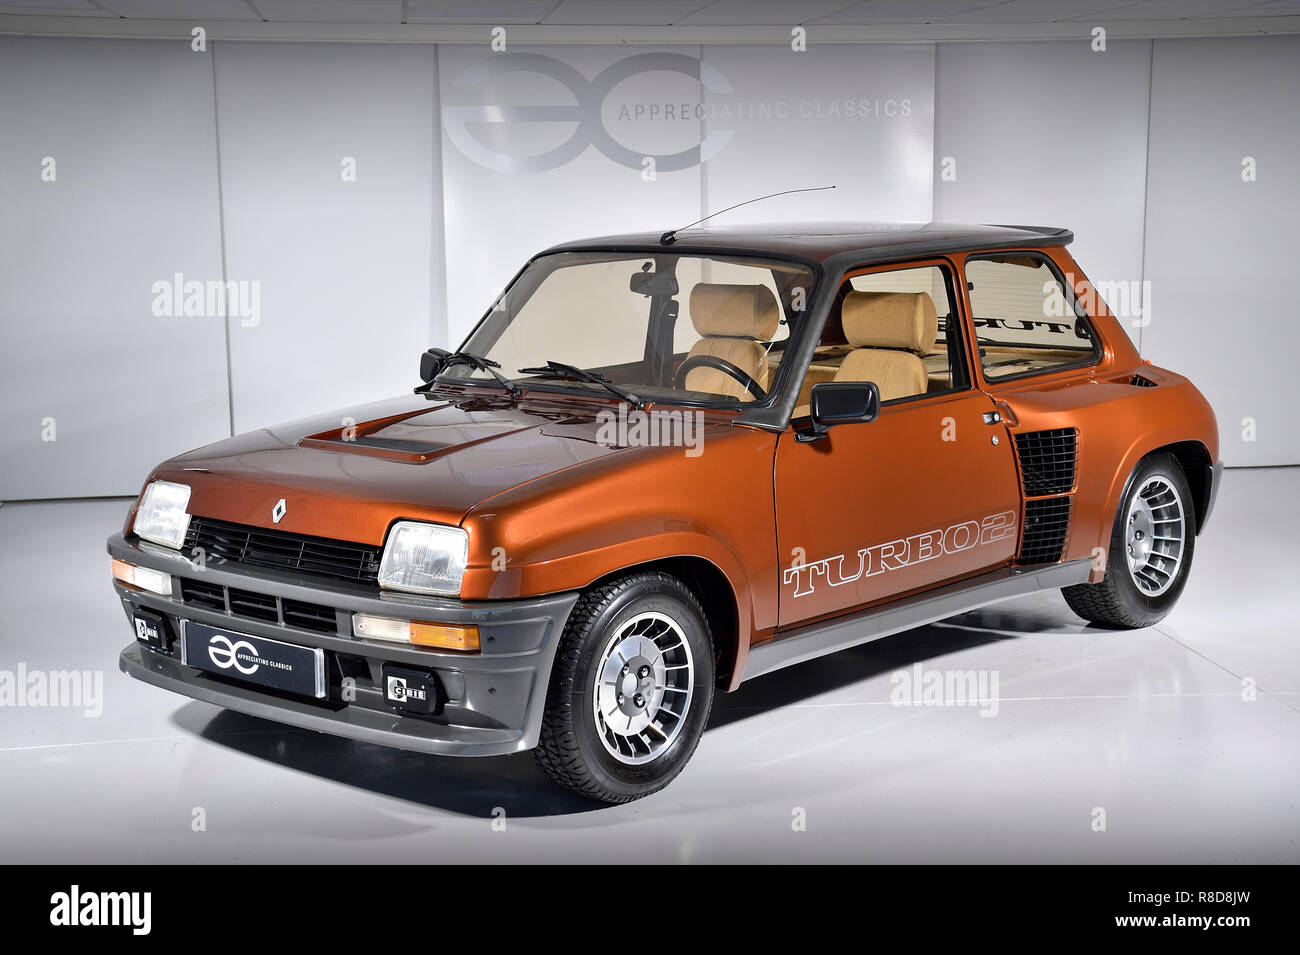 Renault 5 Turbo High Resolution Stock Photography And Images Alamy